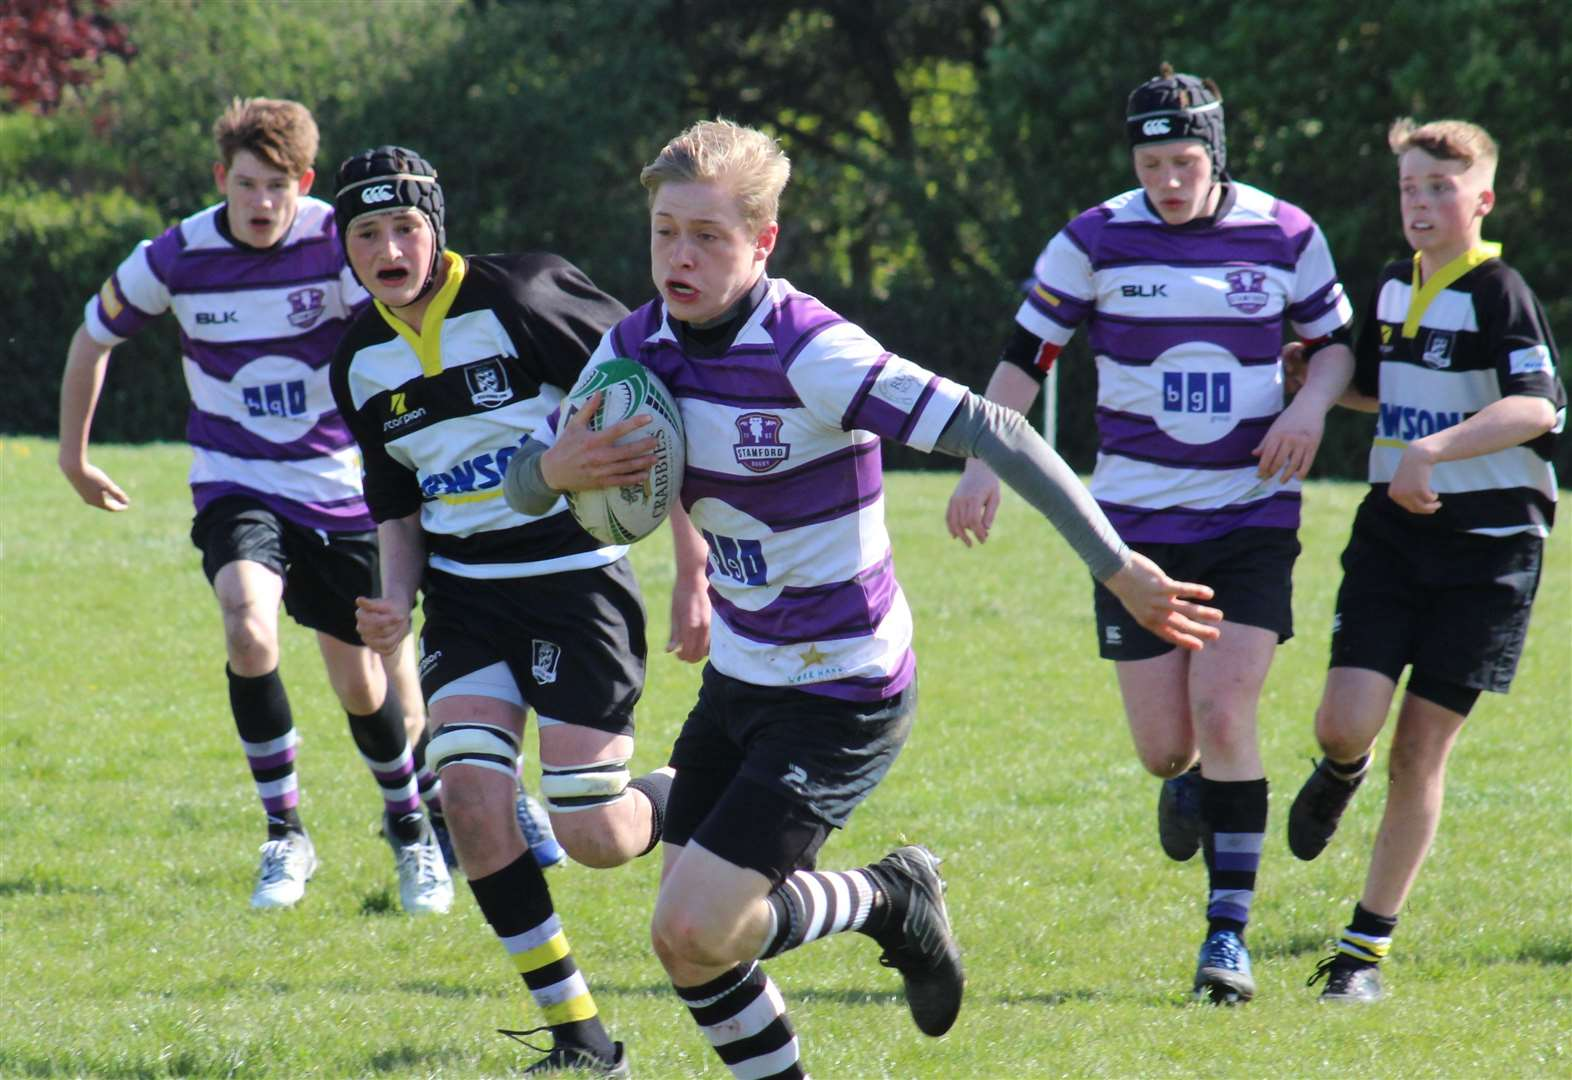 RUGBY: Season finishes on a high with emphatic home win